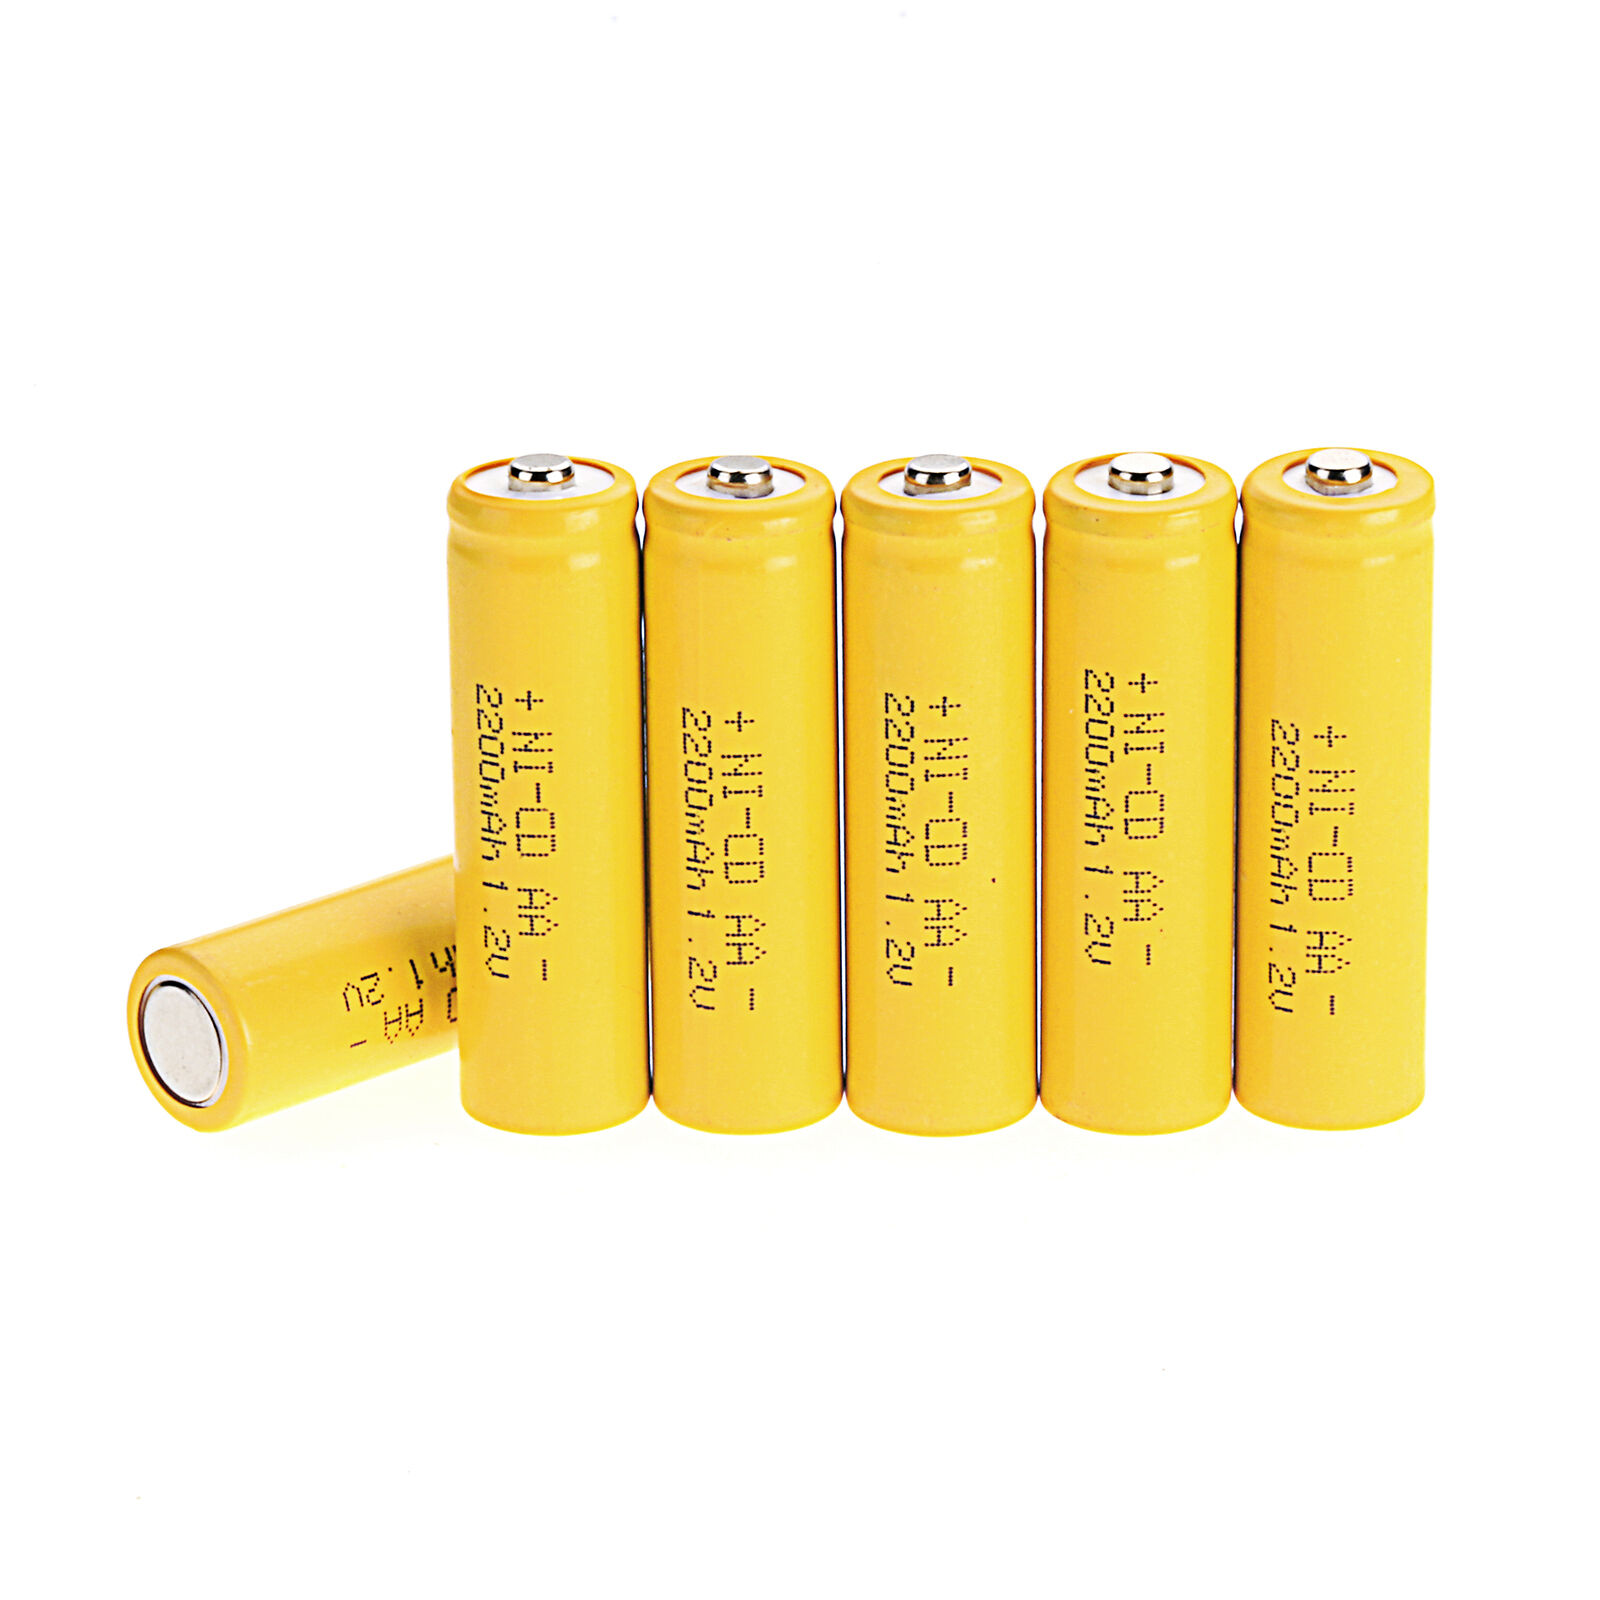 10 x rechargeable 1 2v 600mah nimh aaa solar light batteries for garden lights ebay. Black Bedroom Furniture Sets. Home Design Ideas